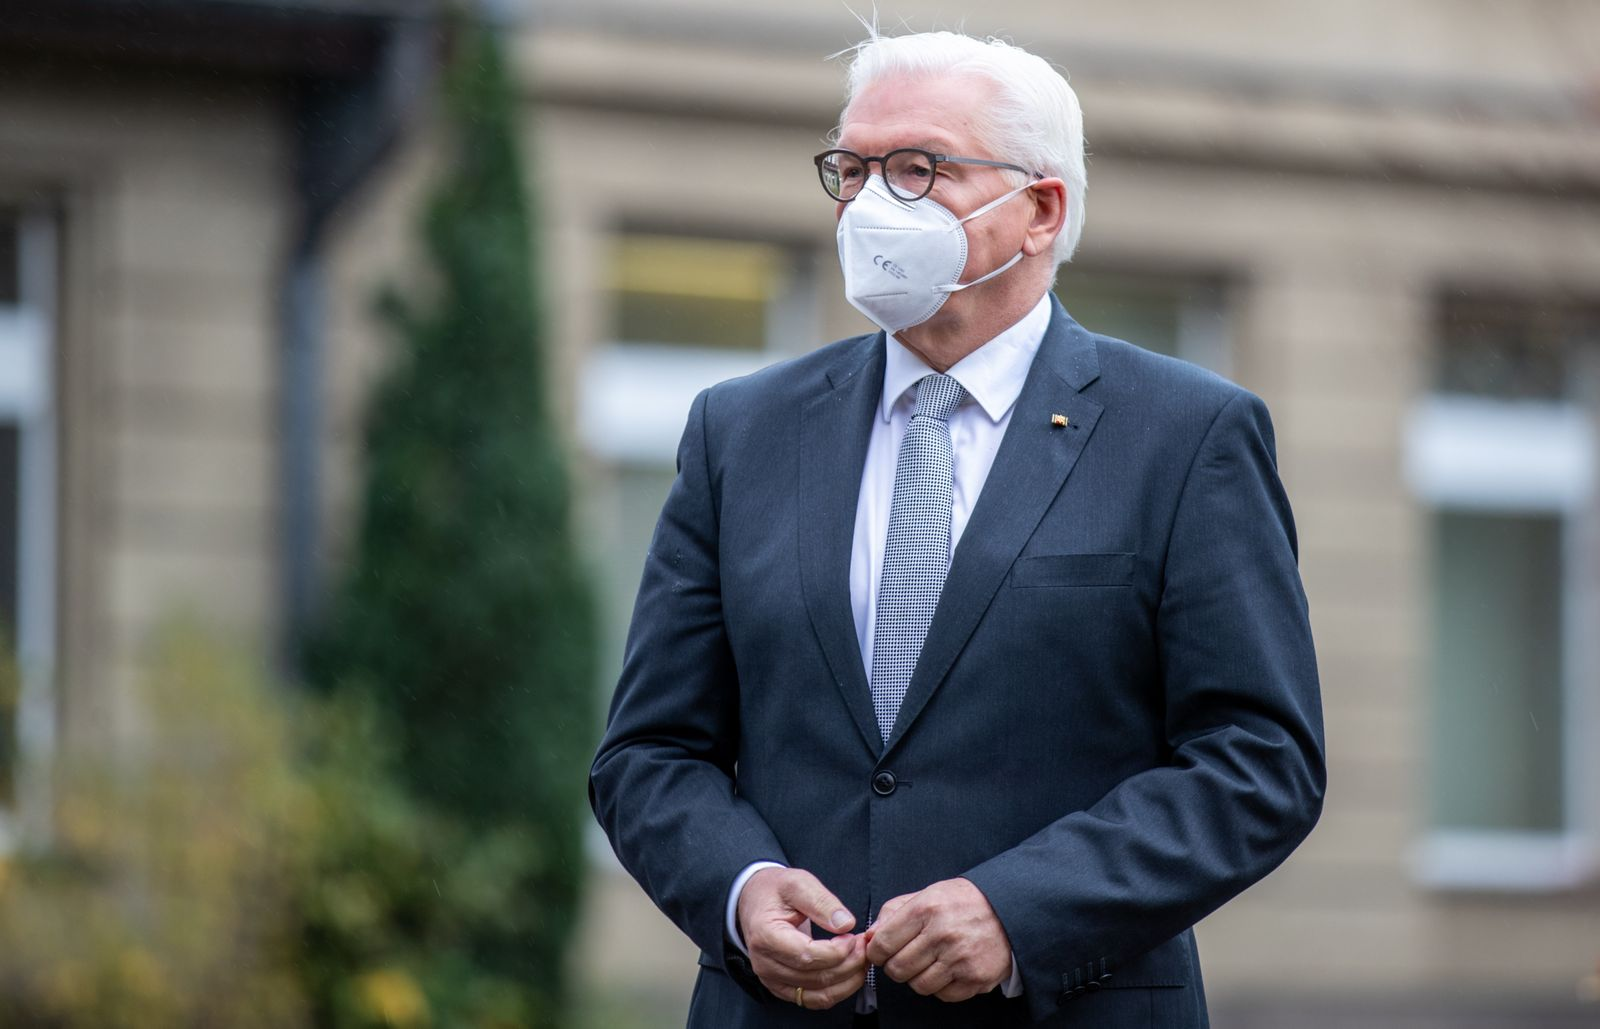 President Steinmeier Visits Local Health Office During The Second Wave Of The Coronavirus Pandemic